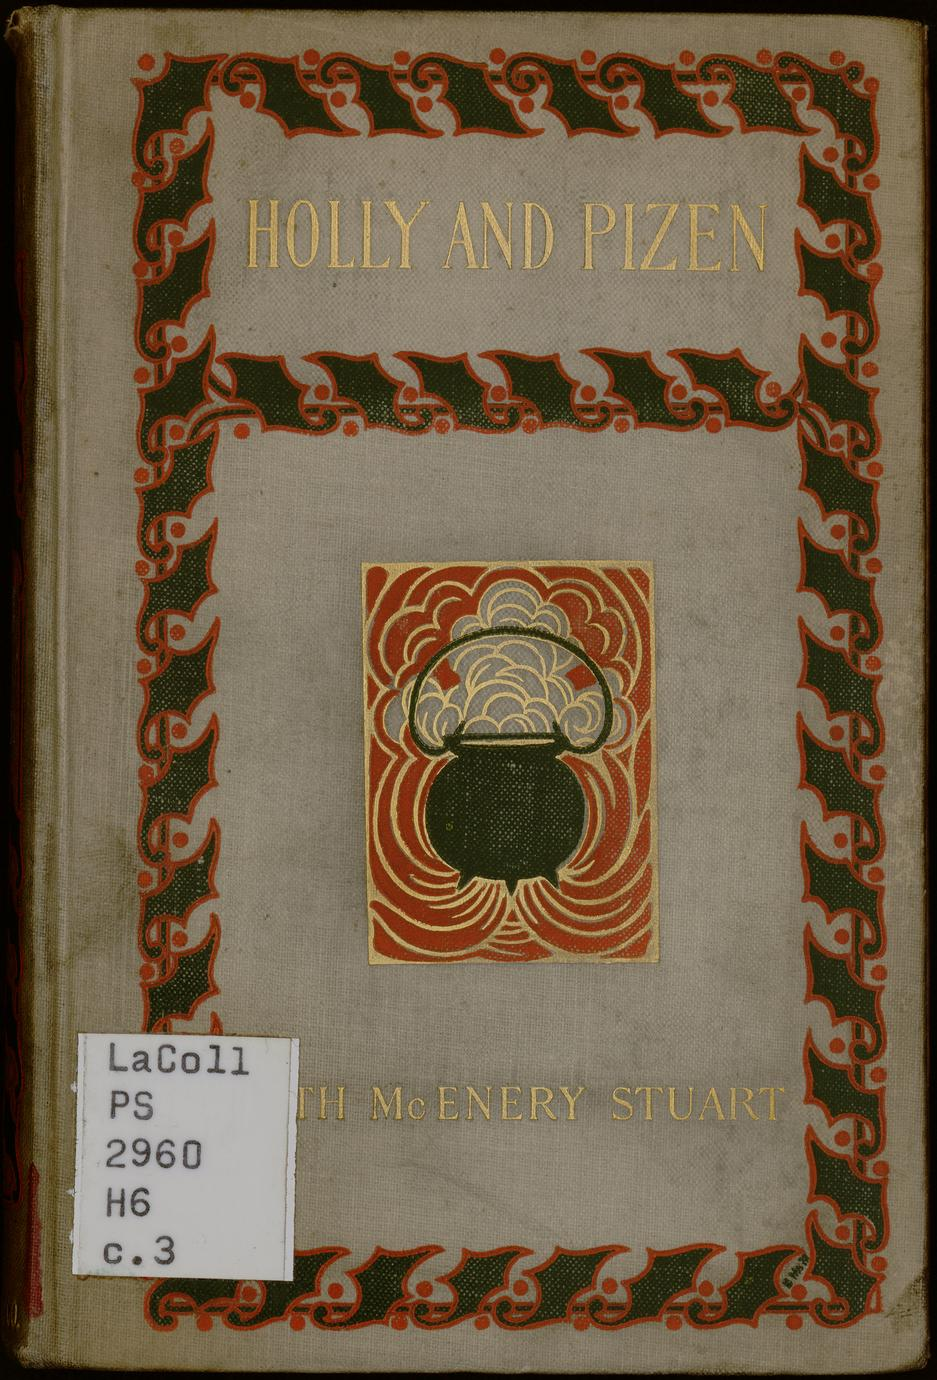 Holly and pizen and other stories (1 of 3)